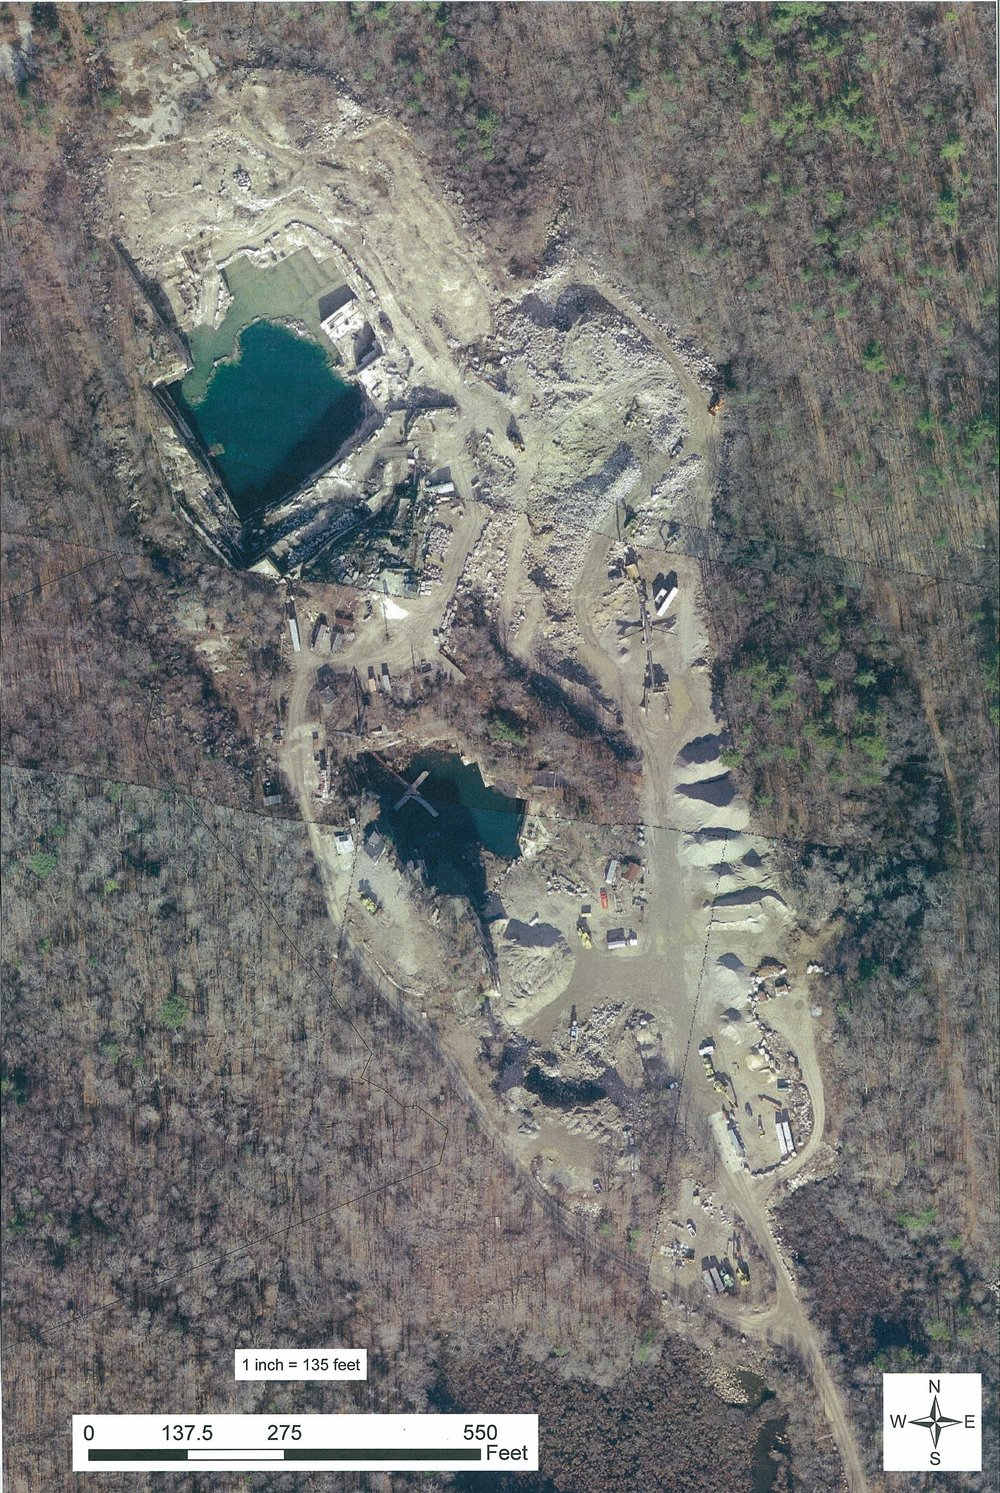 Stony Creek Quarry.jpg